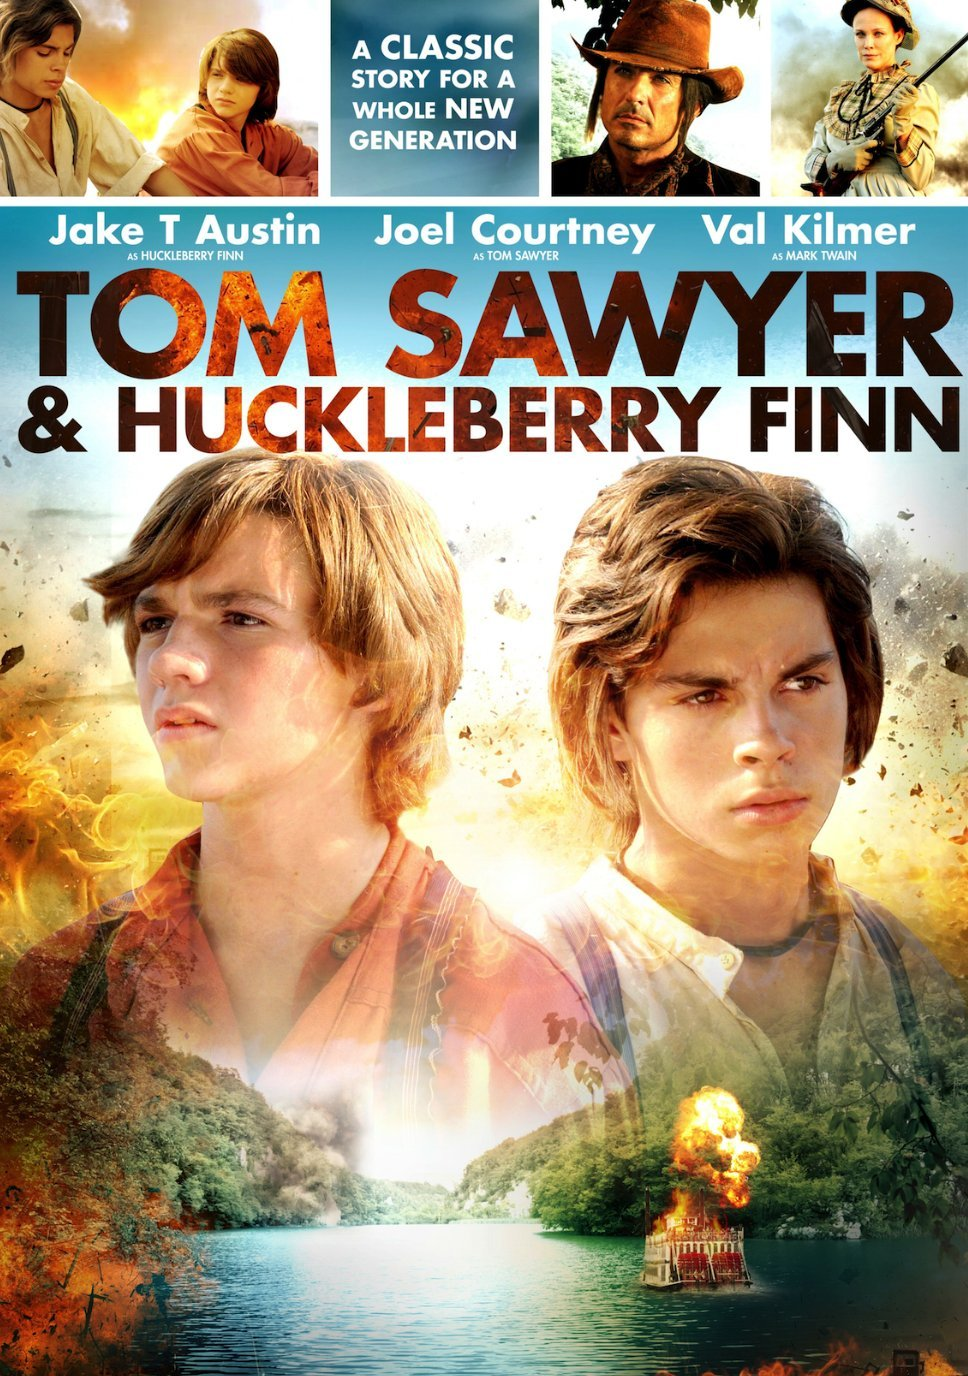 huckleberry finn actors Huckleberry finn grew up semi-homeless and neglected by pap, his alcoholic, abusive father, on the lowest rung of the missouri socio-economic ladder (except for slaves.